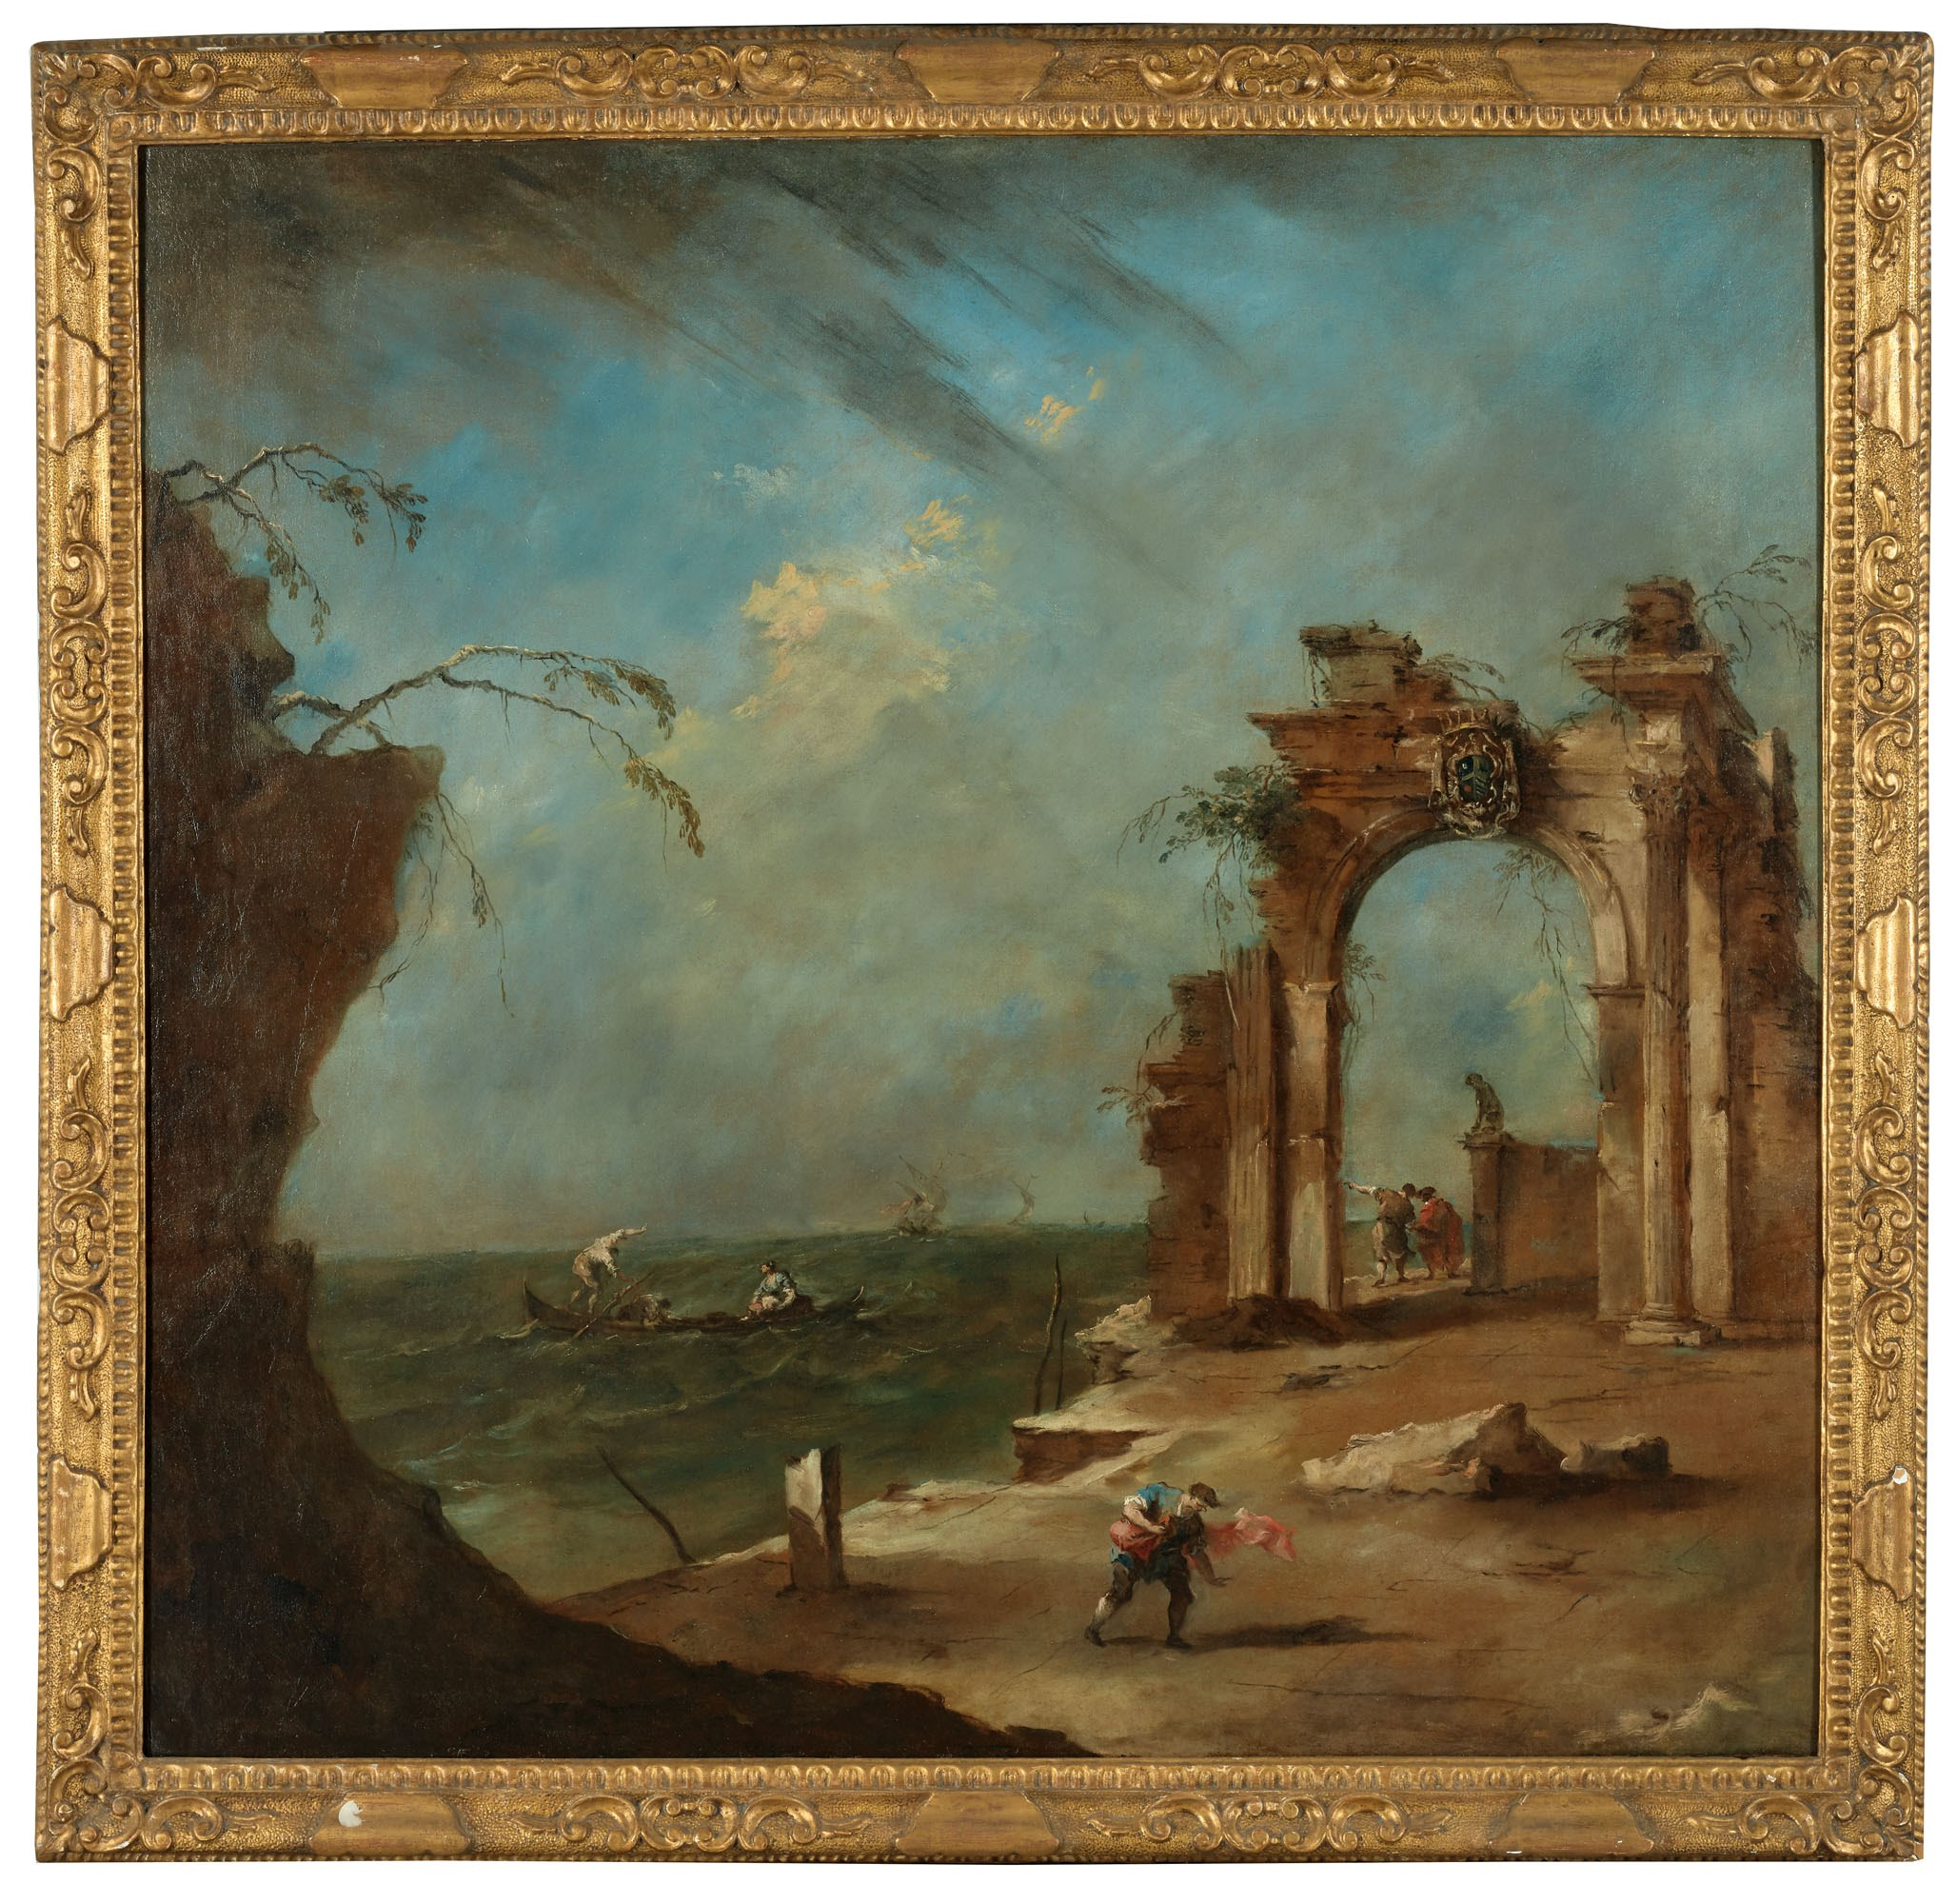 Francesco Guardi (1712-1793), A whim with a ruined arch on the lagoon. Oil on canvas. 133 x 138.5  cm (52⅜ x 54½  in). Estimate for pair €300,000-500,000. Offered in Commander Paul-Louis Weiller, Captain of industry, protector of the arts on 15 September 2020 at Christie's in Paris